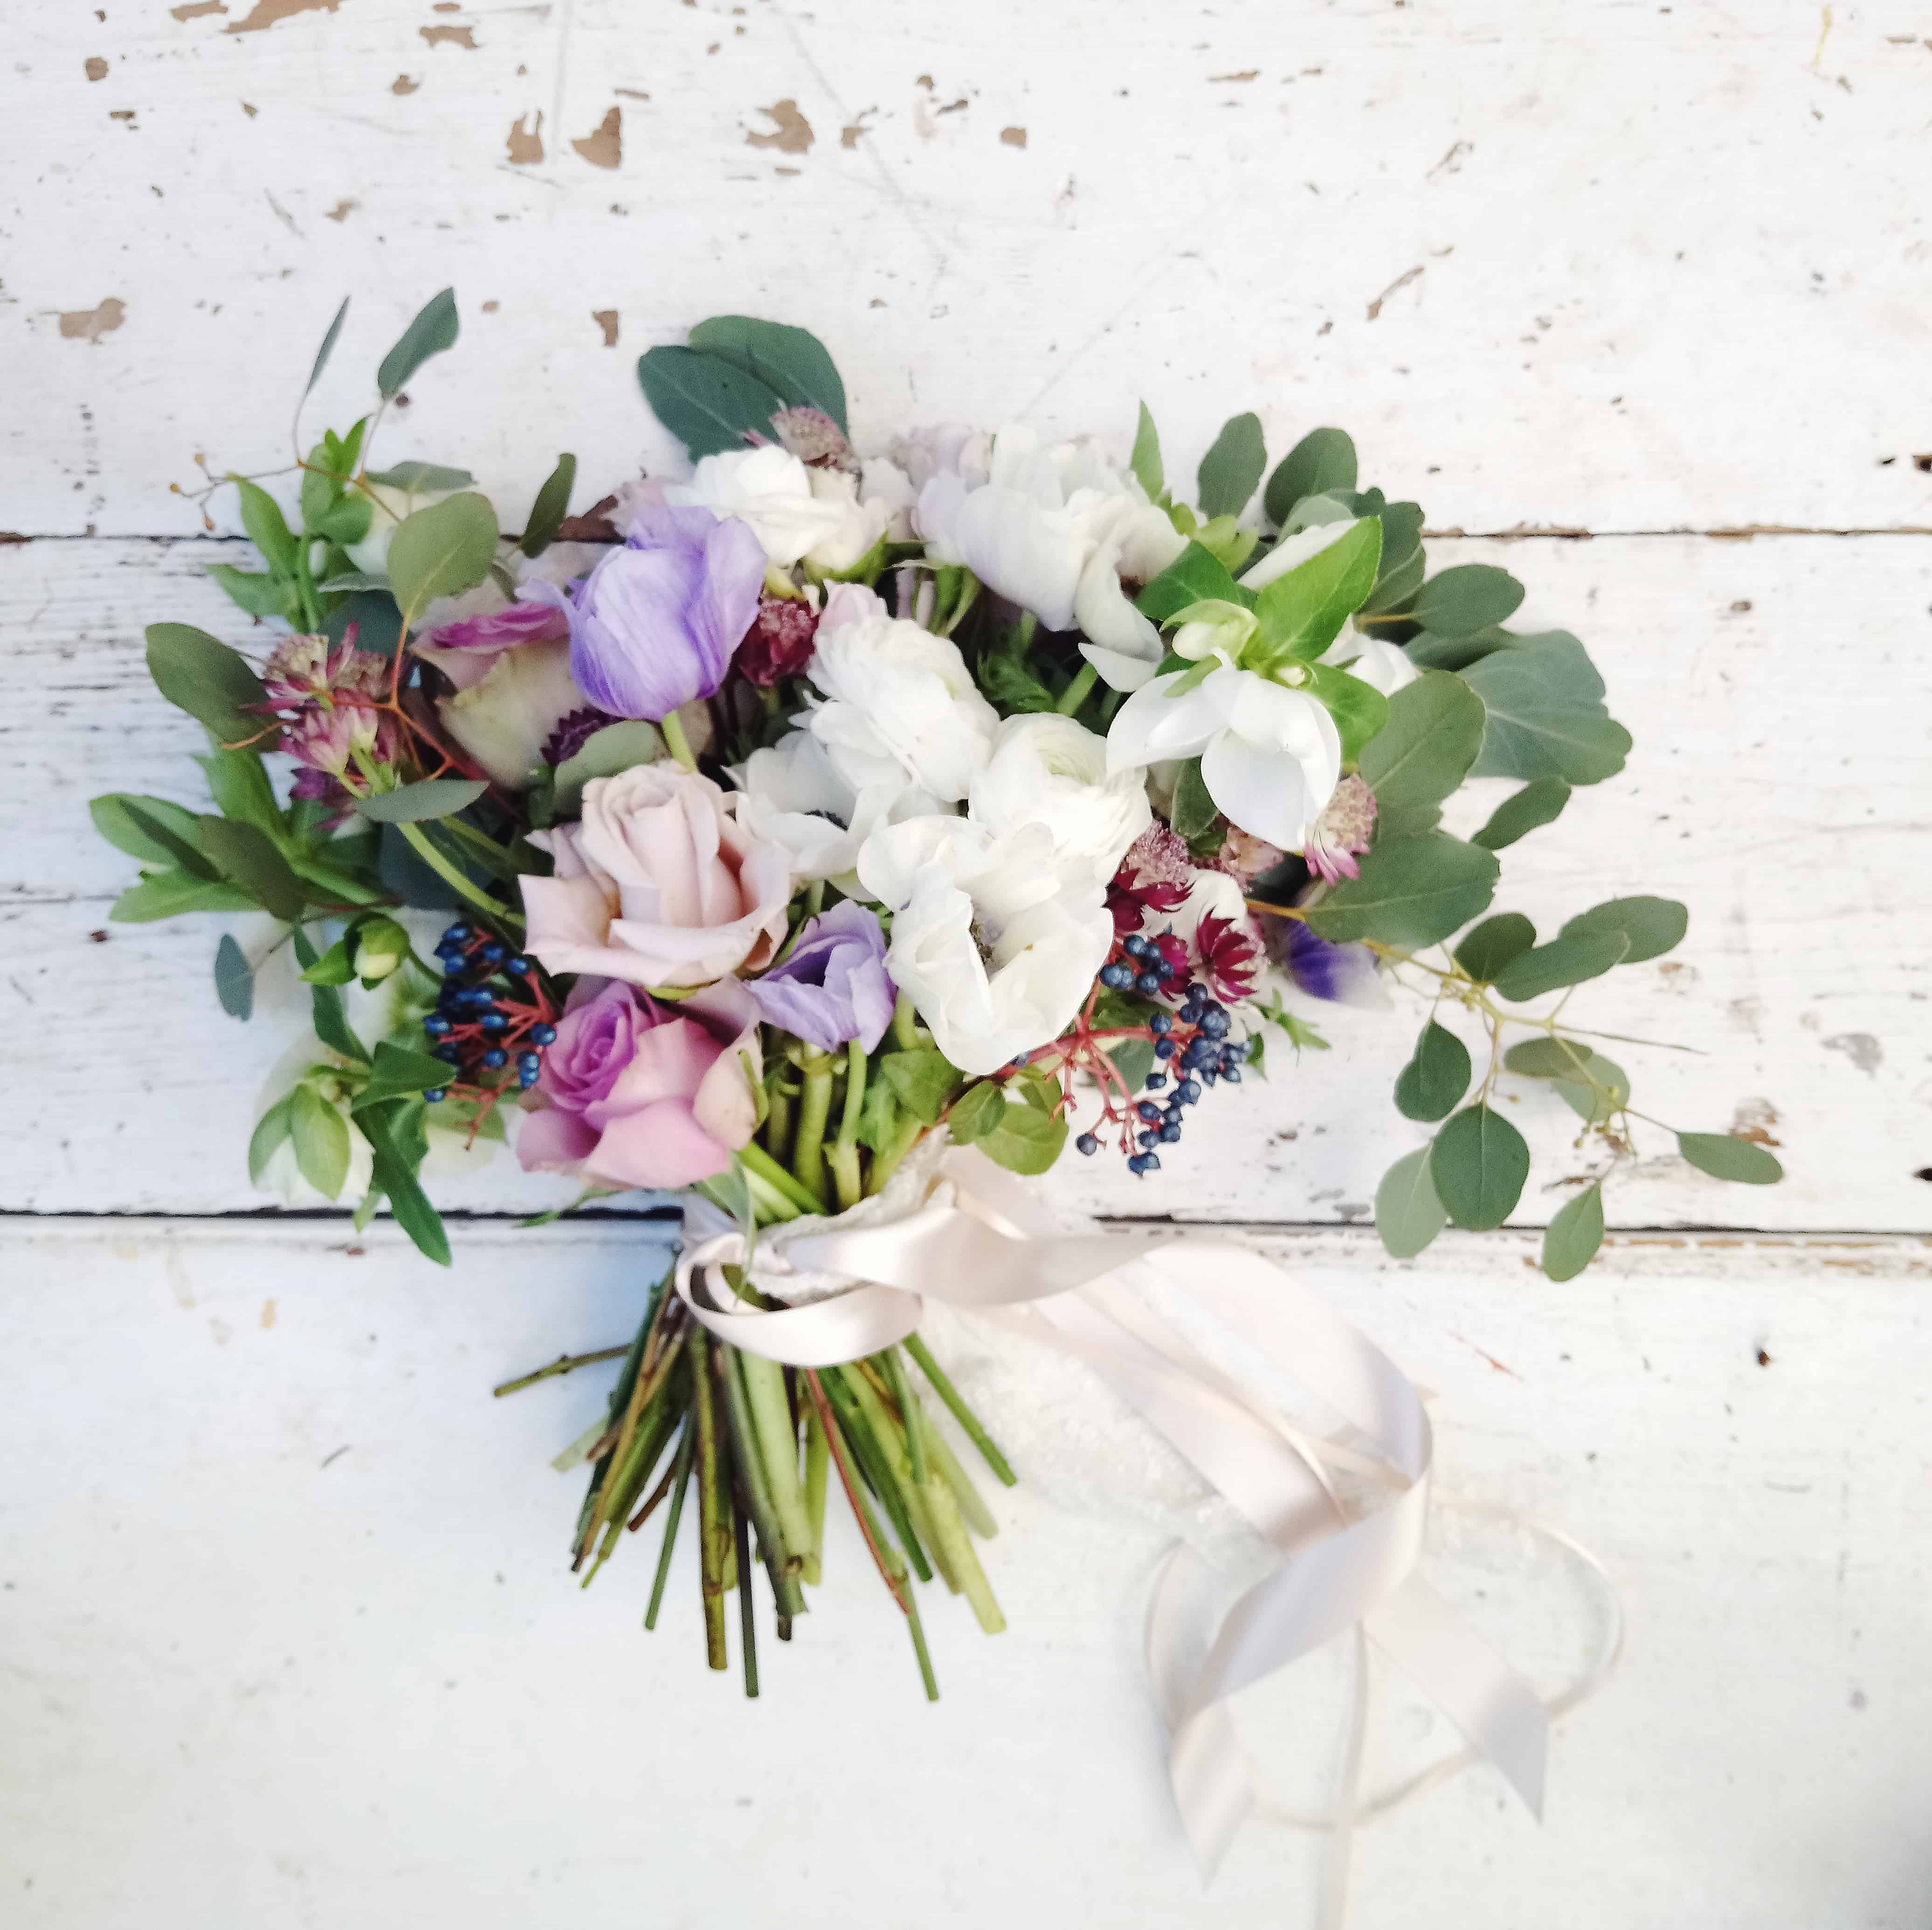 Wedding Flower Inspiration Stunning Winter Into Spring Blooms